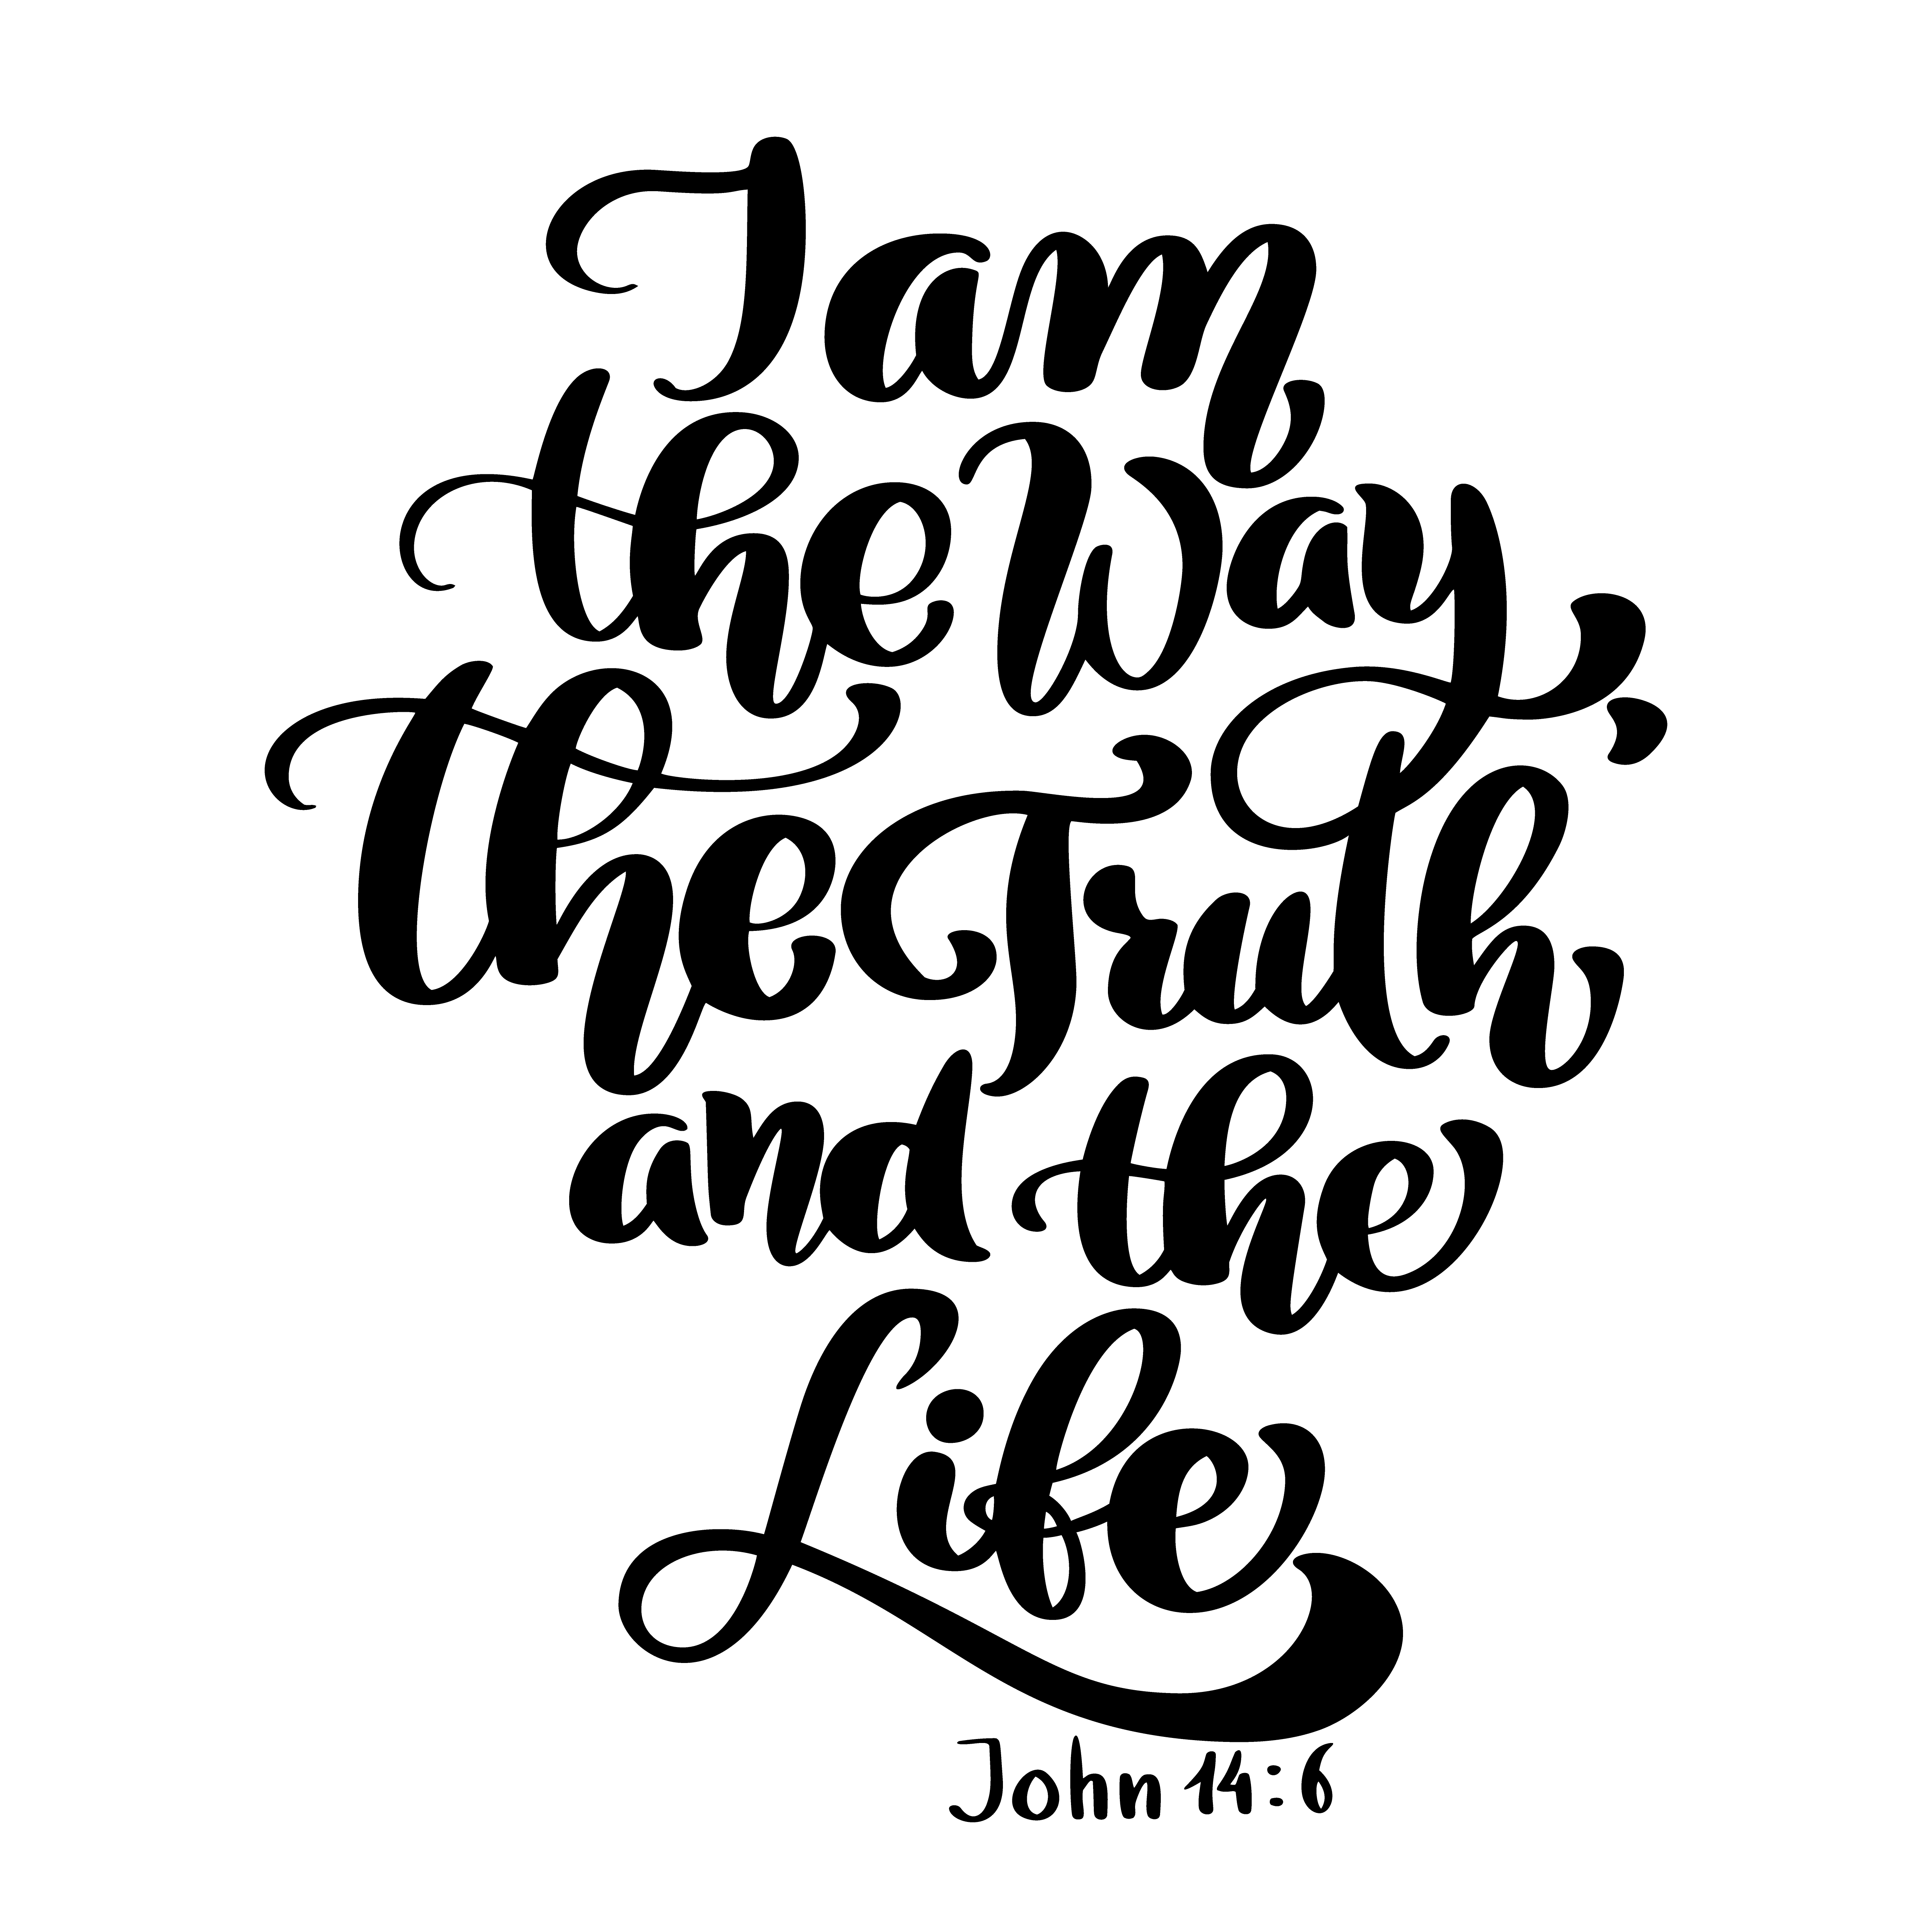 Hand lettering I am the way, truth and life, John 14 6 ...